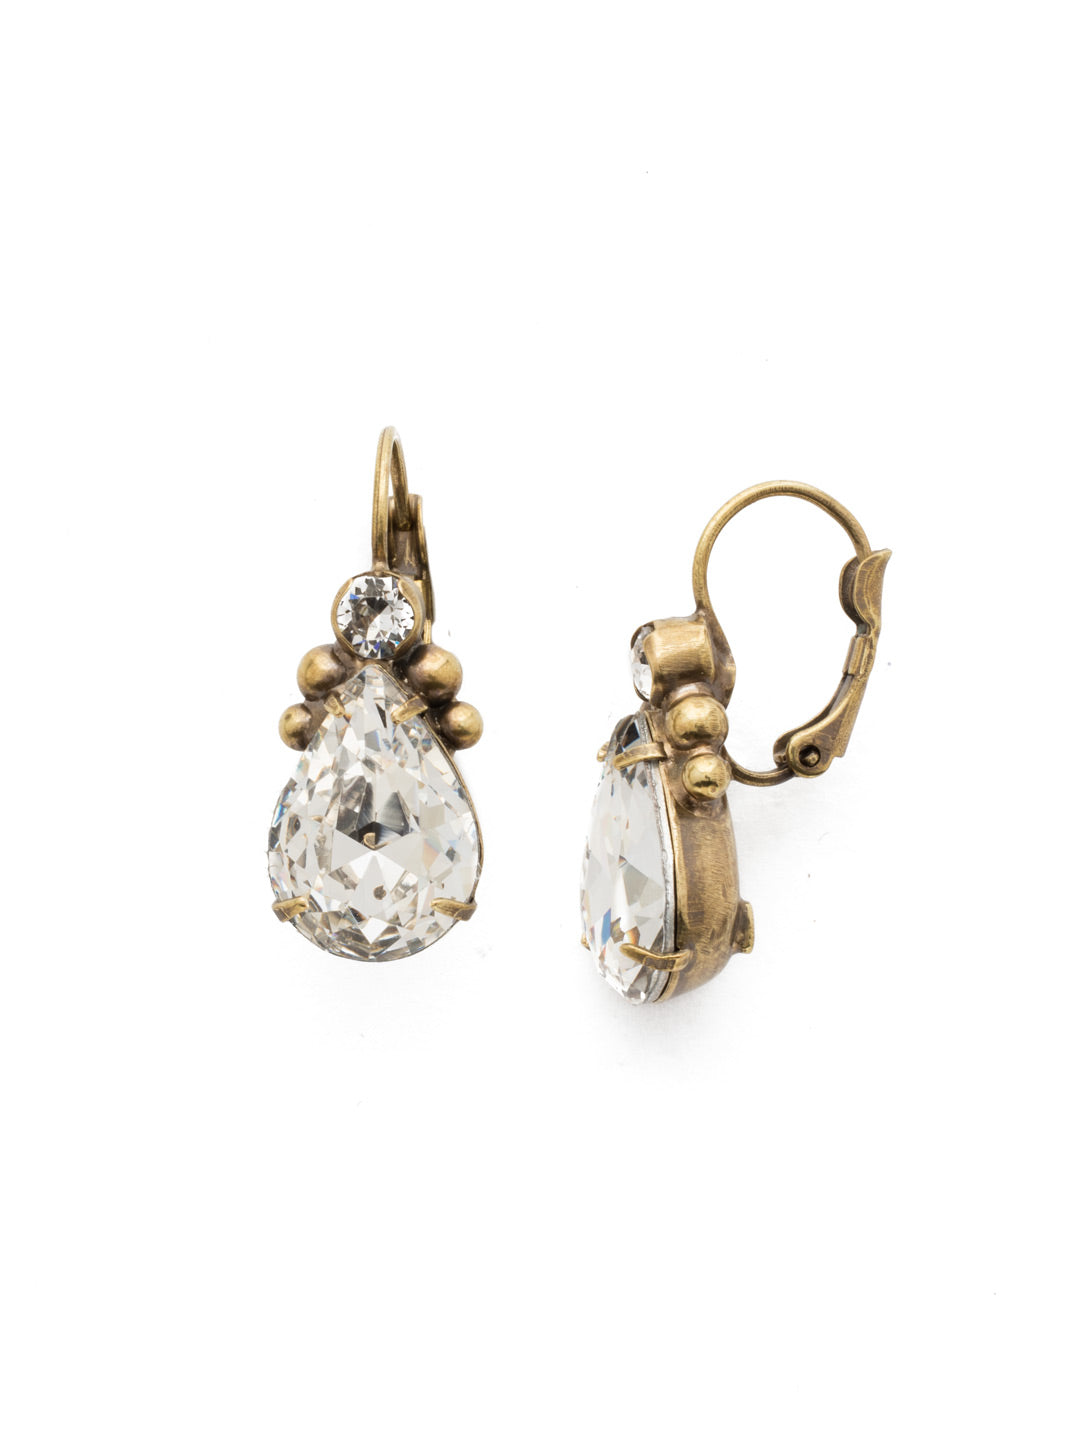 Embellished Pear Earring - EDN60AGCRY